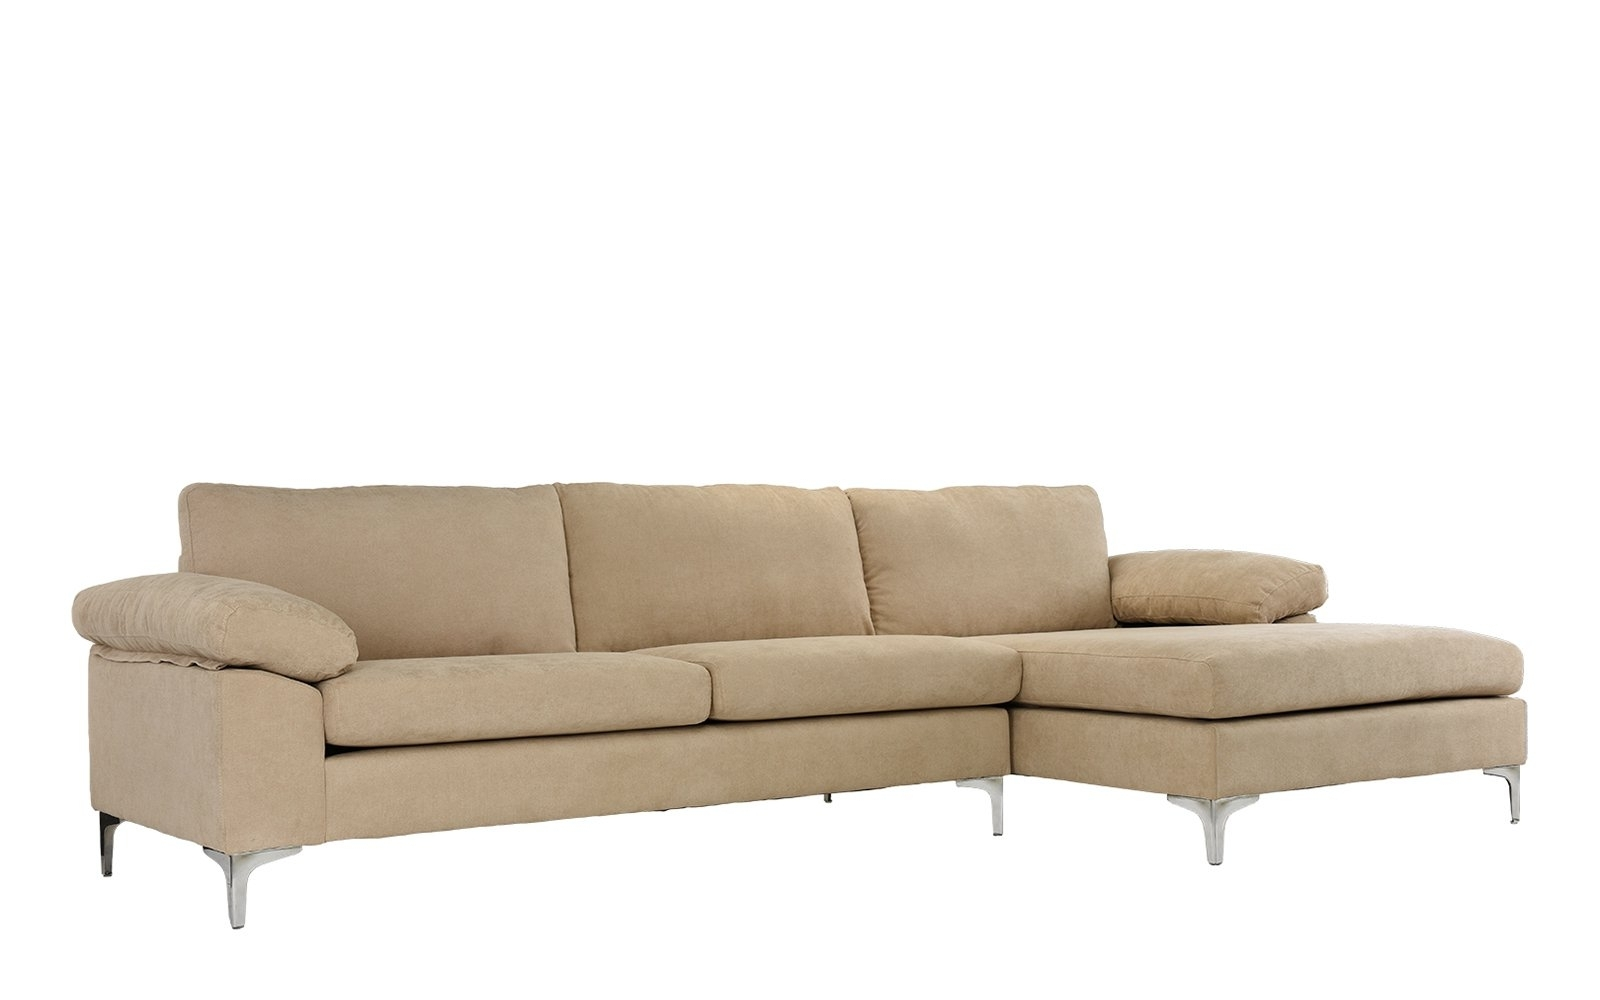 Gta Sectional Sofas Regarding Popular Best Free Modern Sectional Sofa Gta #25321 (Gallery 15 of 15)